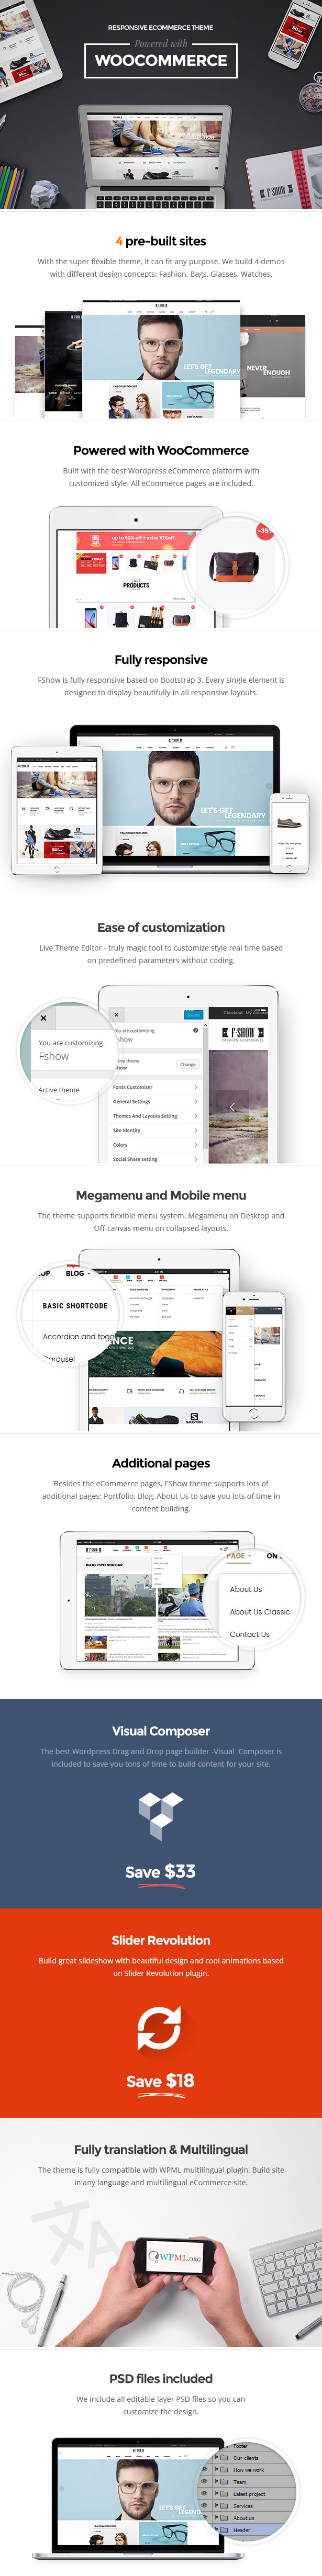 multipurpose responsive ecommerce wordpress theme